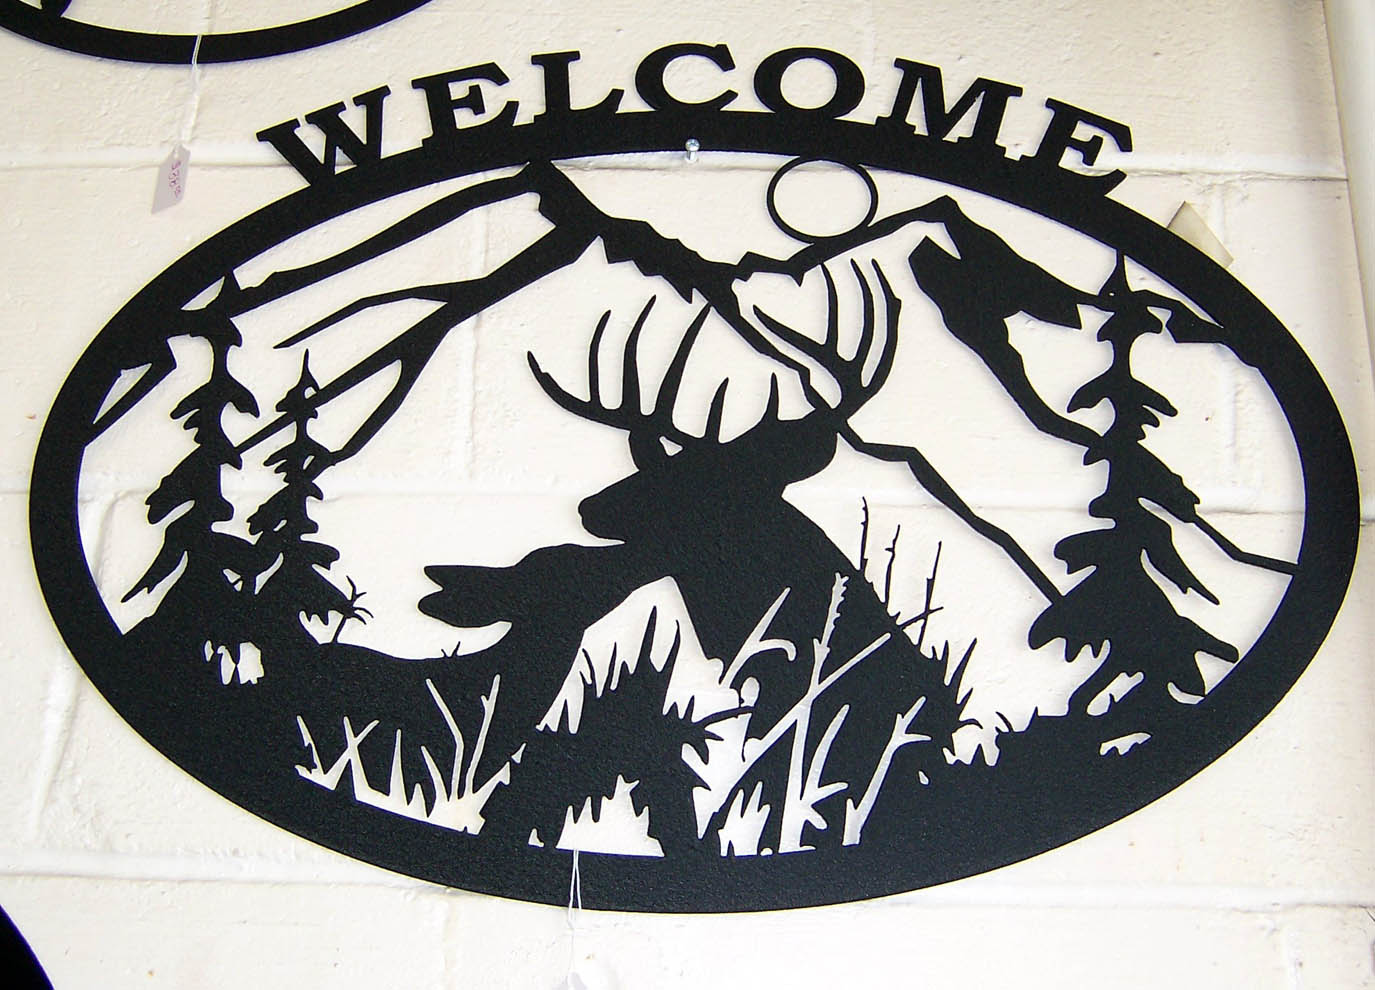 1375x990 Deer Welcome Sign Signtorch, Turning Images Into Vector Cut Paths.